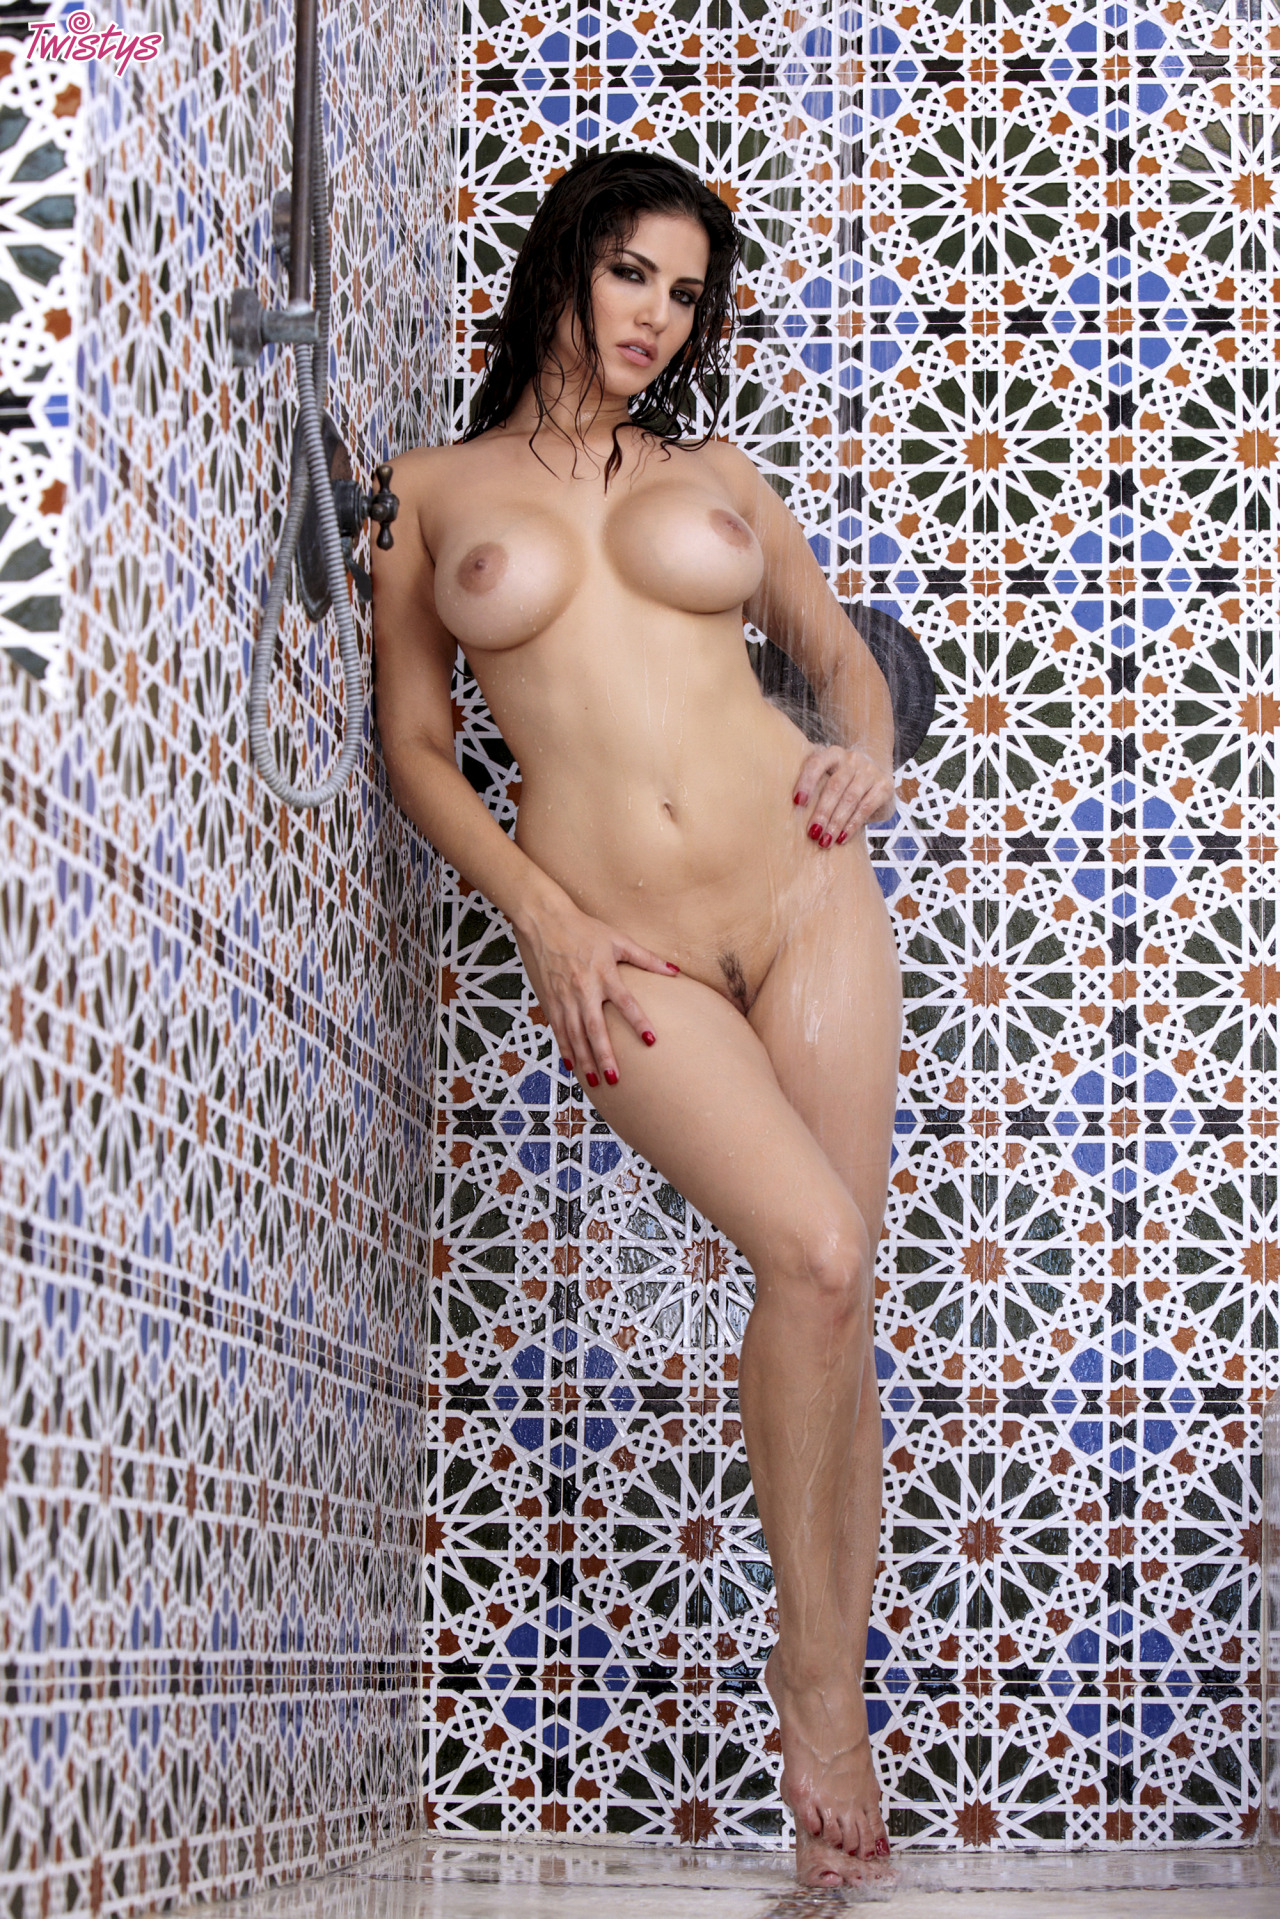 Sunny Leone Getting Wet N Wild In The Shower 3